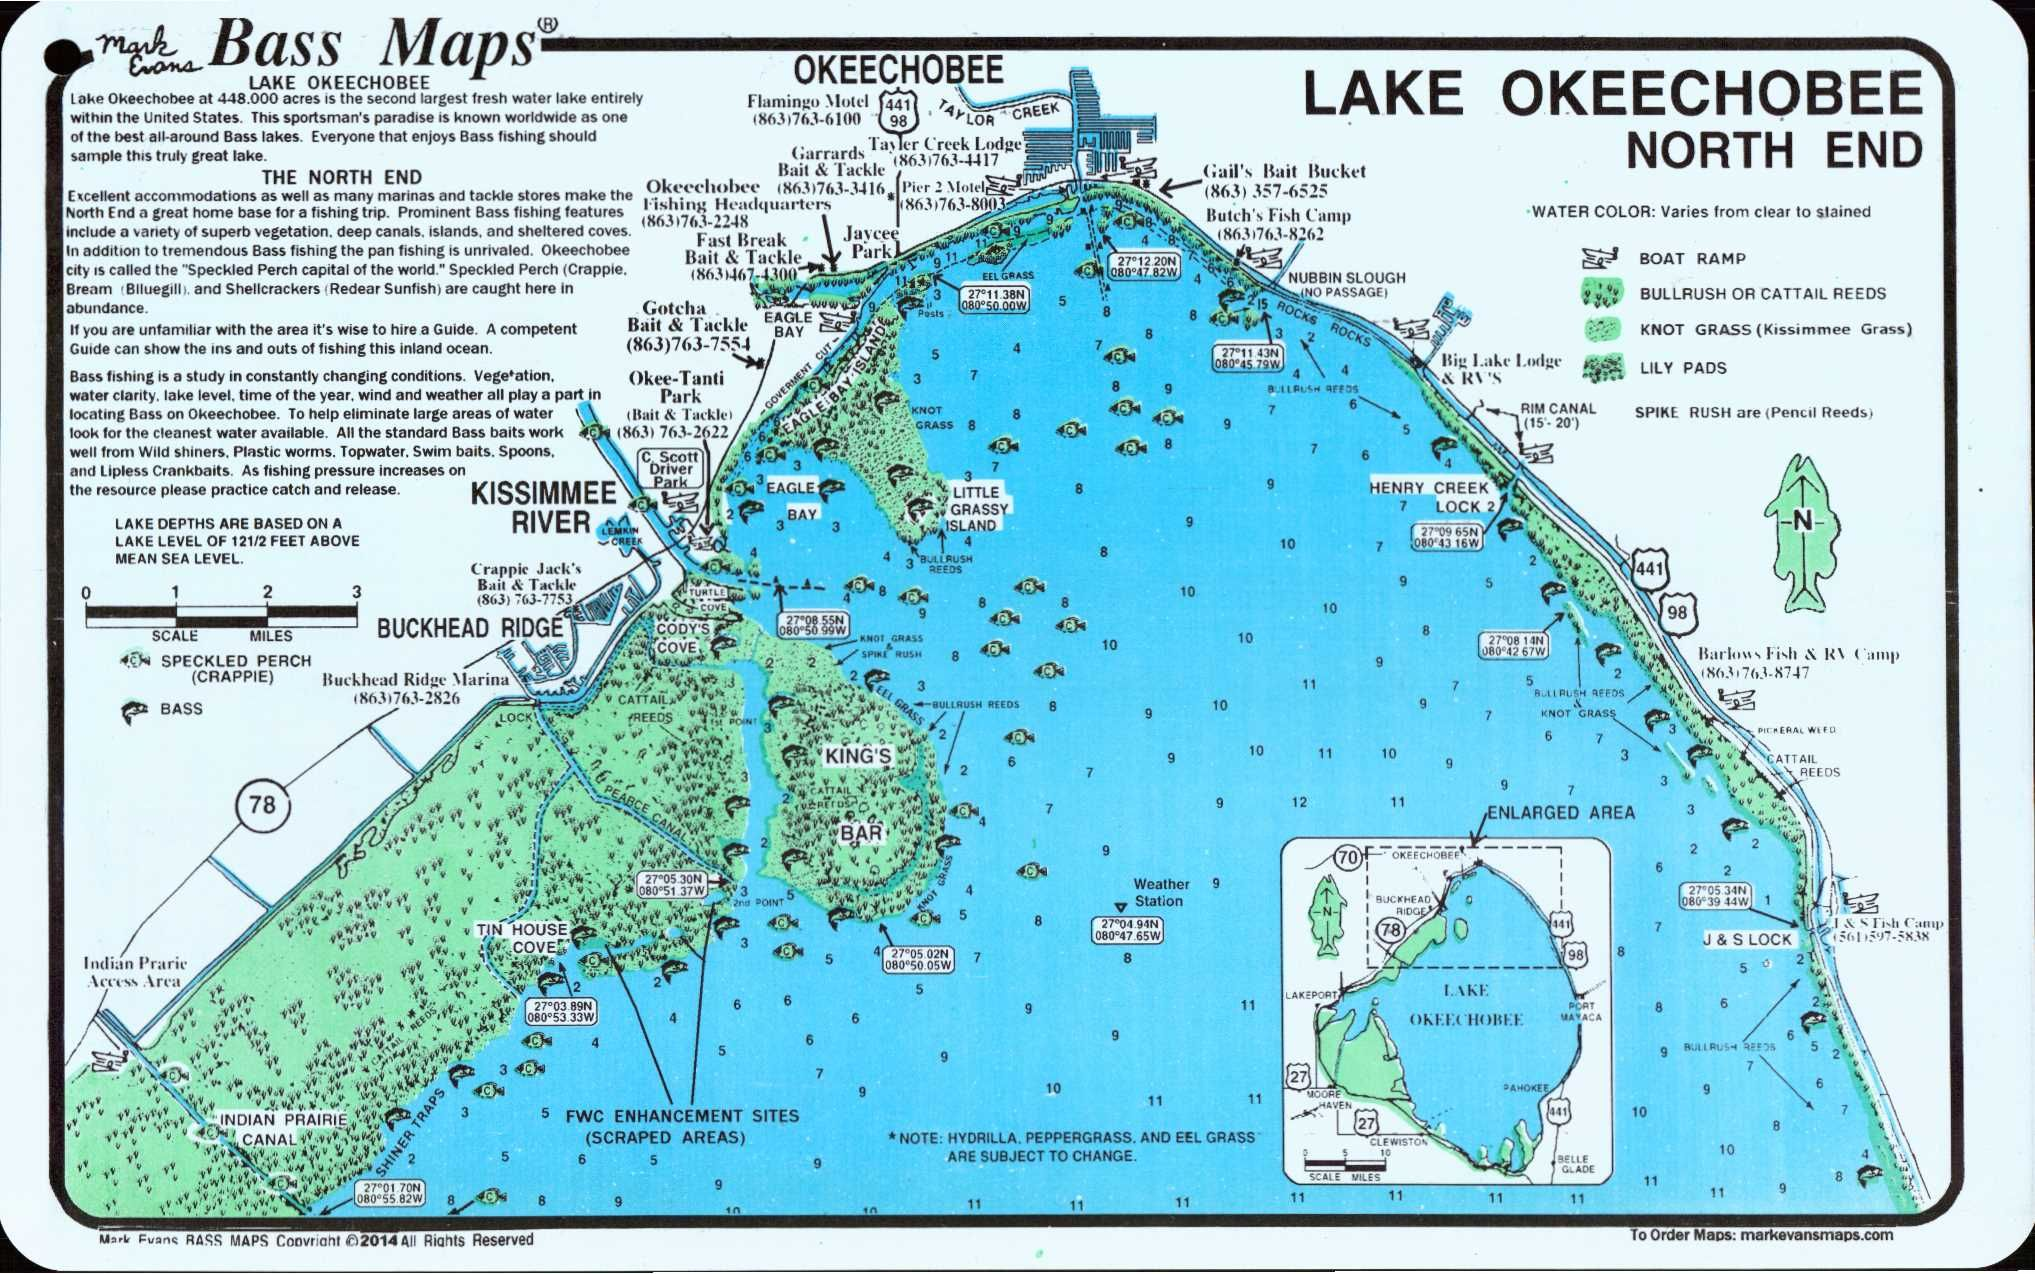 Lake Okeechobee Map lake okeechobee map | Lake Okeechobee North (North End & Lakeport  Lake Okeechobee Map